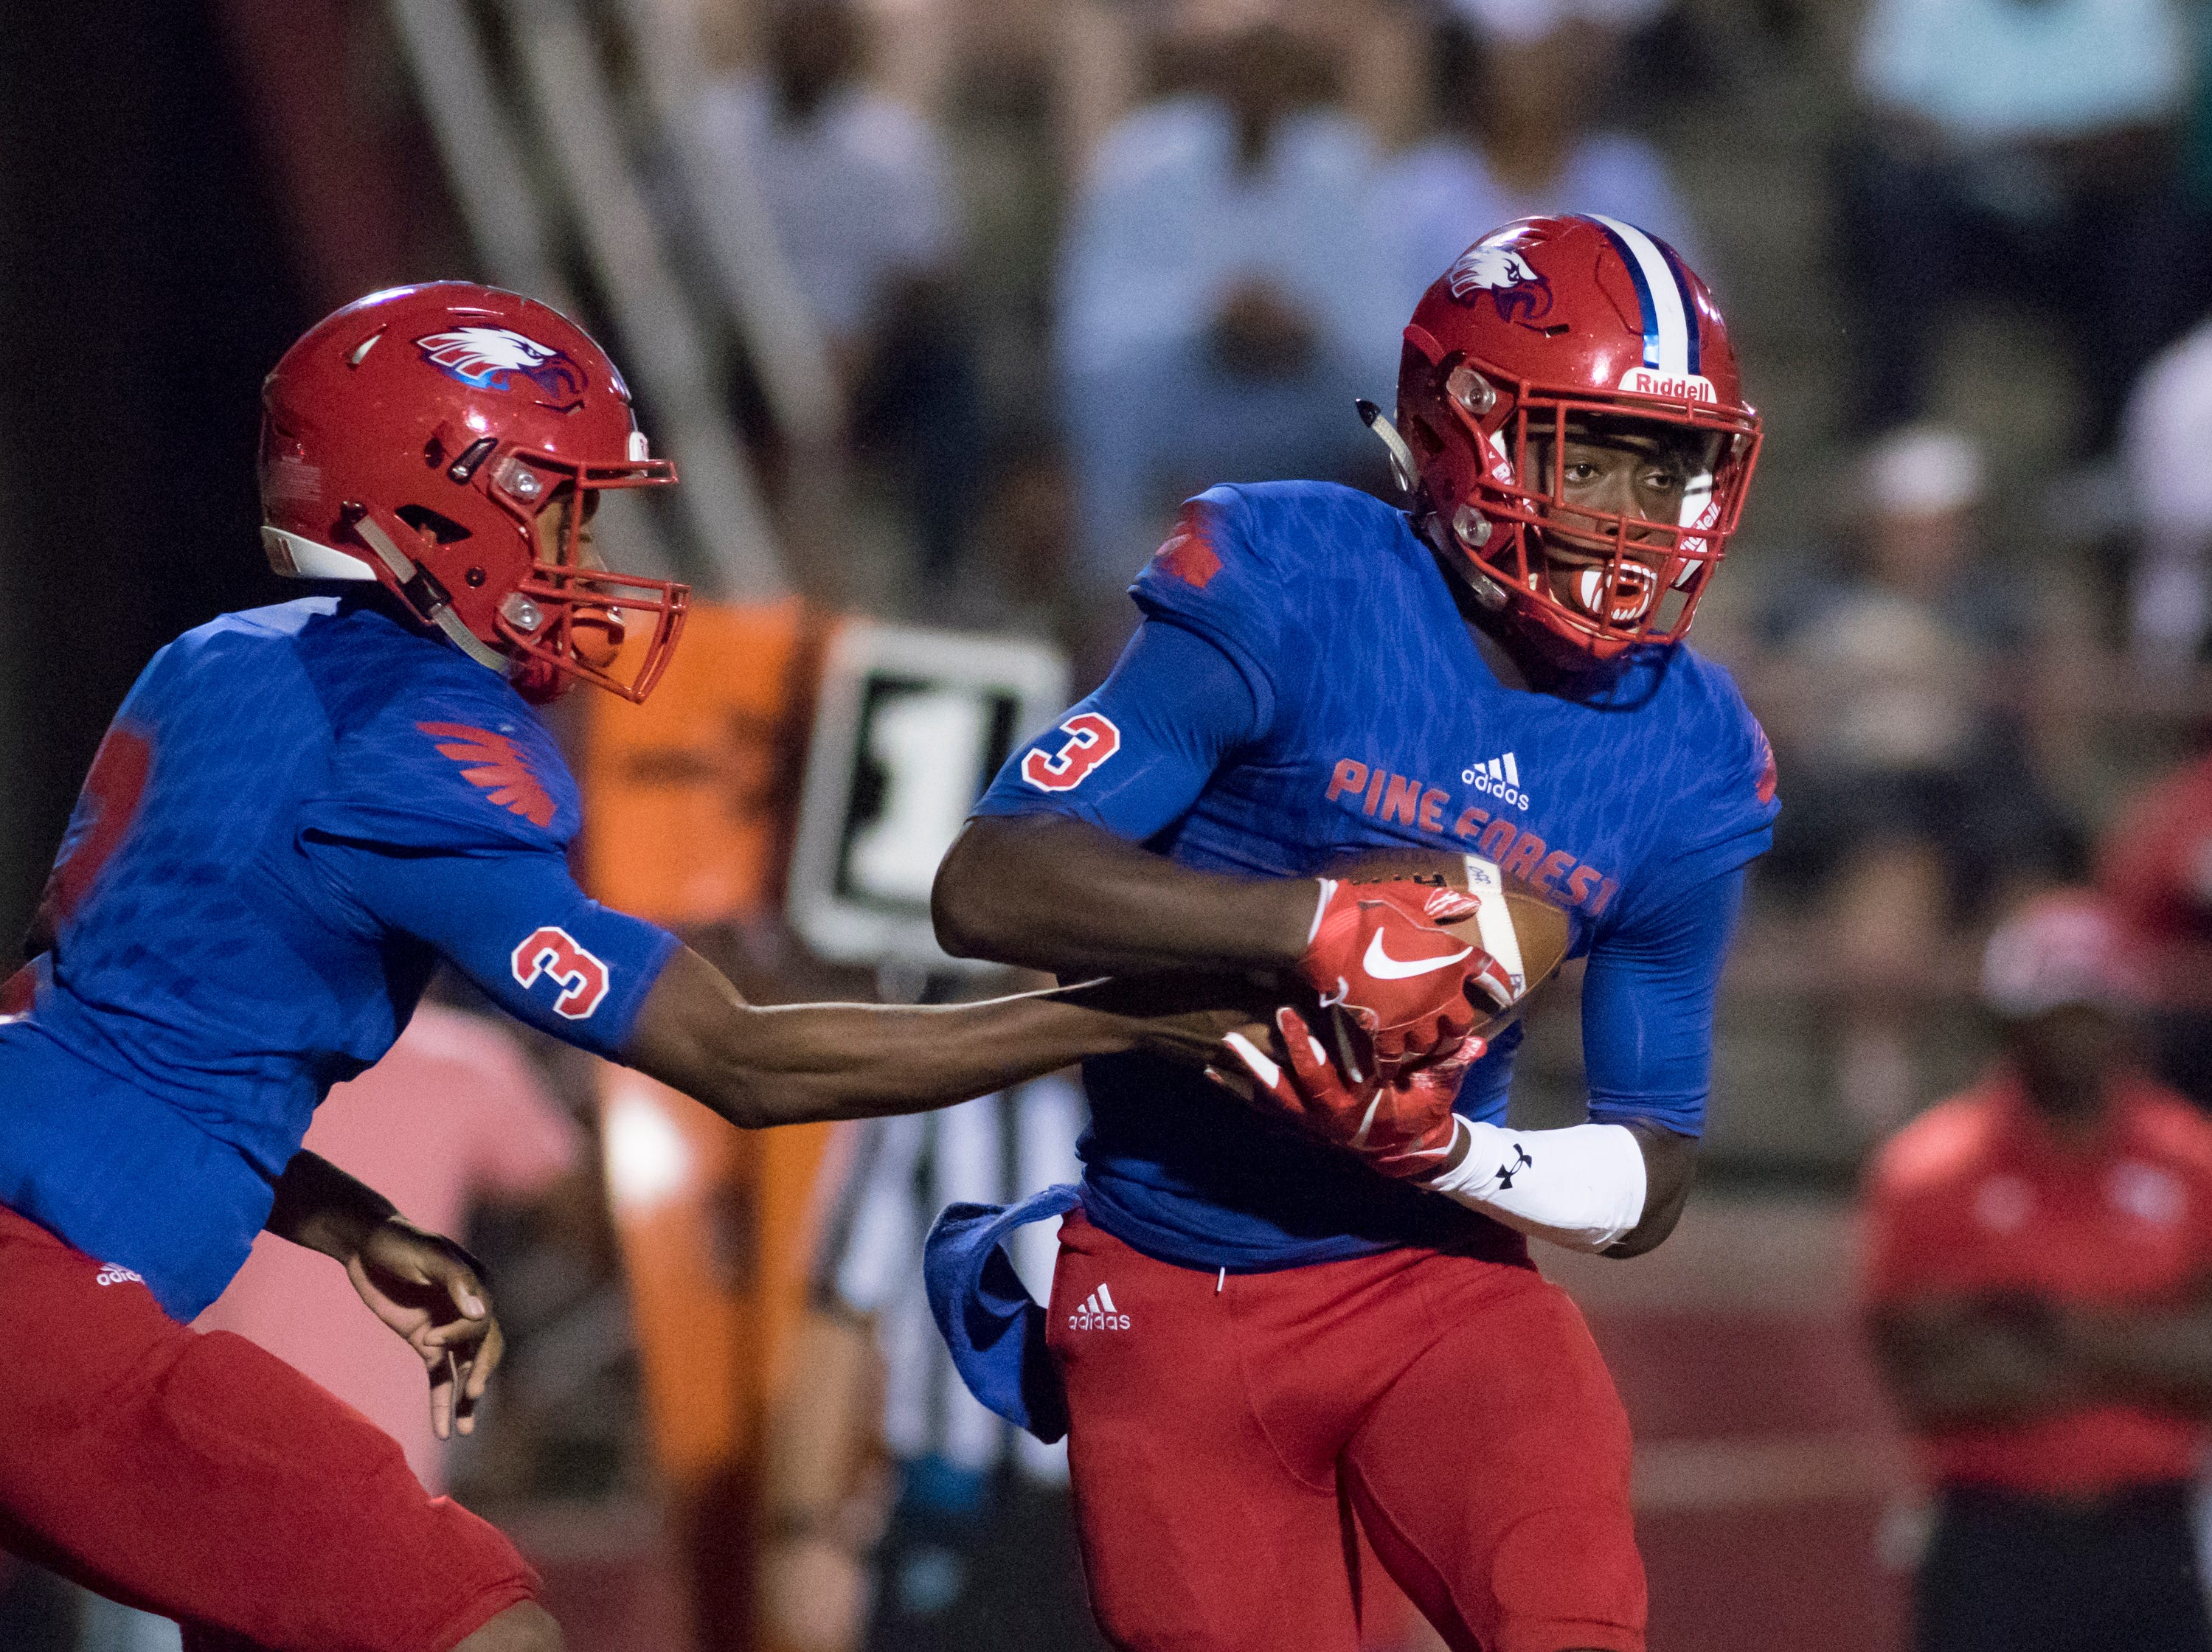 Quarterback Ladarius Clardy (2) hands off to Tehrenzo Turner (7) during the West Florida vs Pine Forest football game at Pine Forest High School in Pensacola on Friday, October 5, 2018.